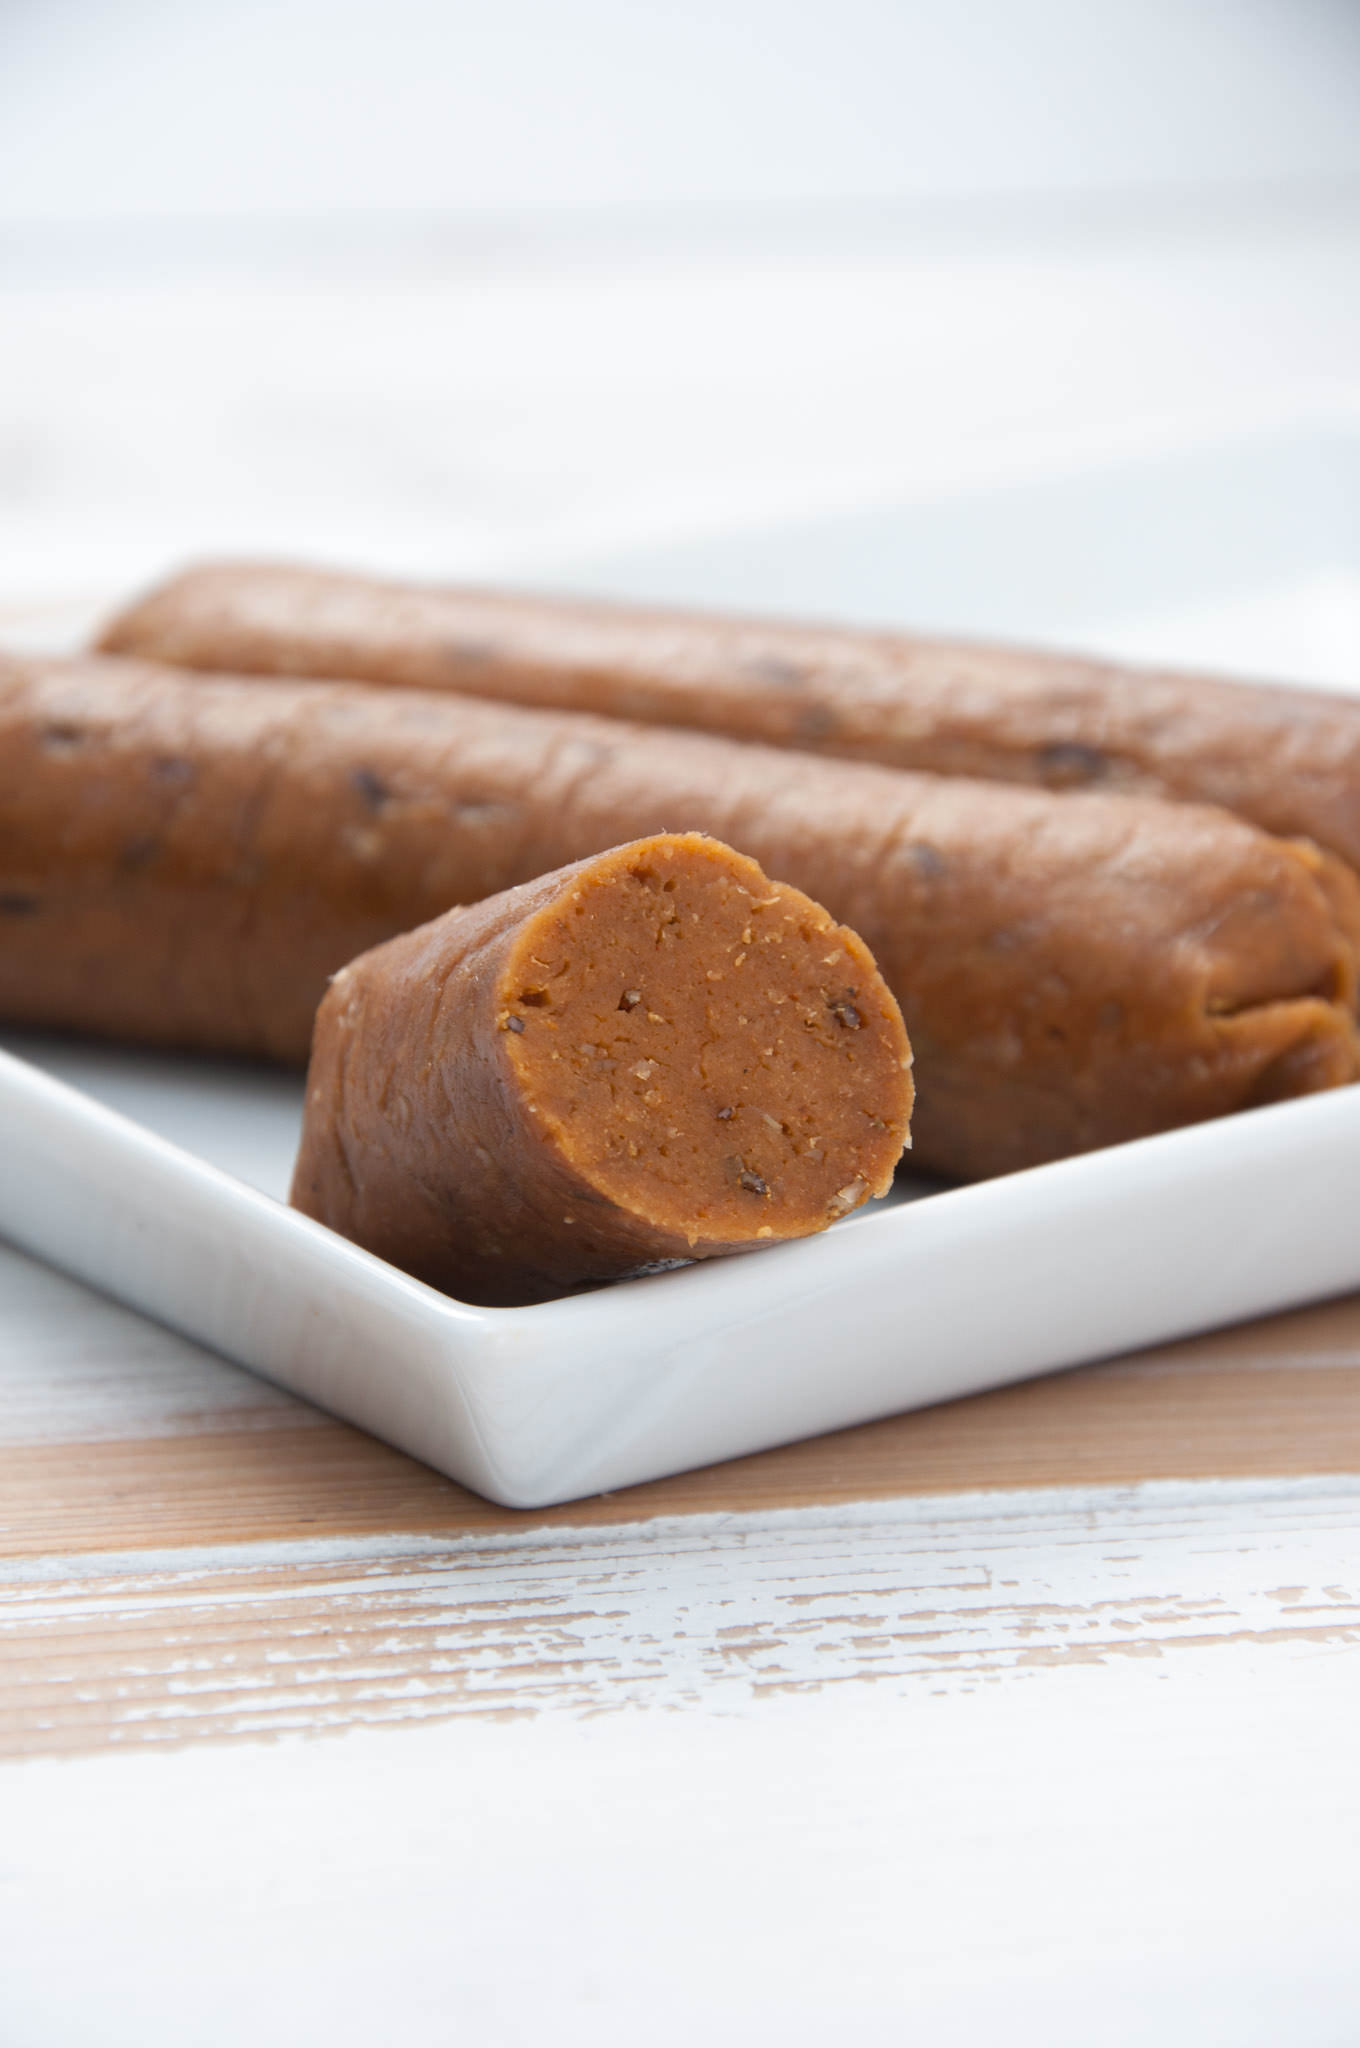 Homemade Vegan Sausages